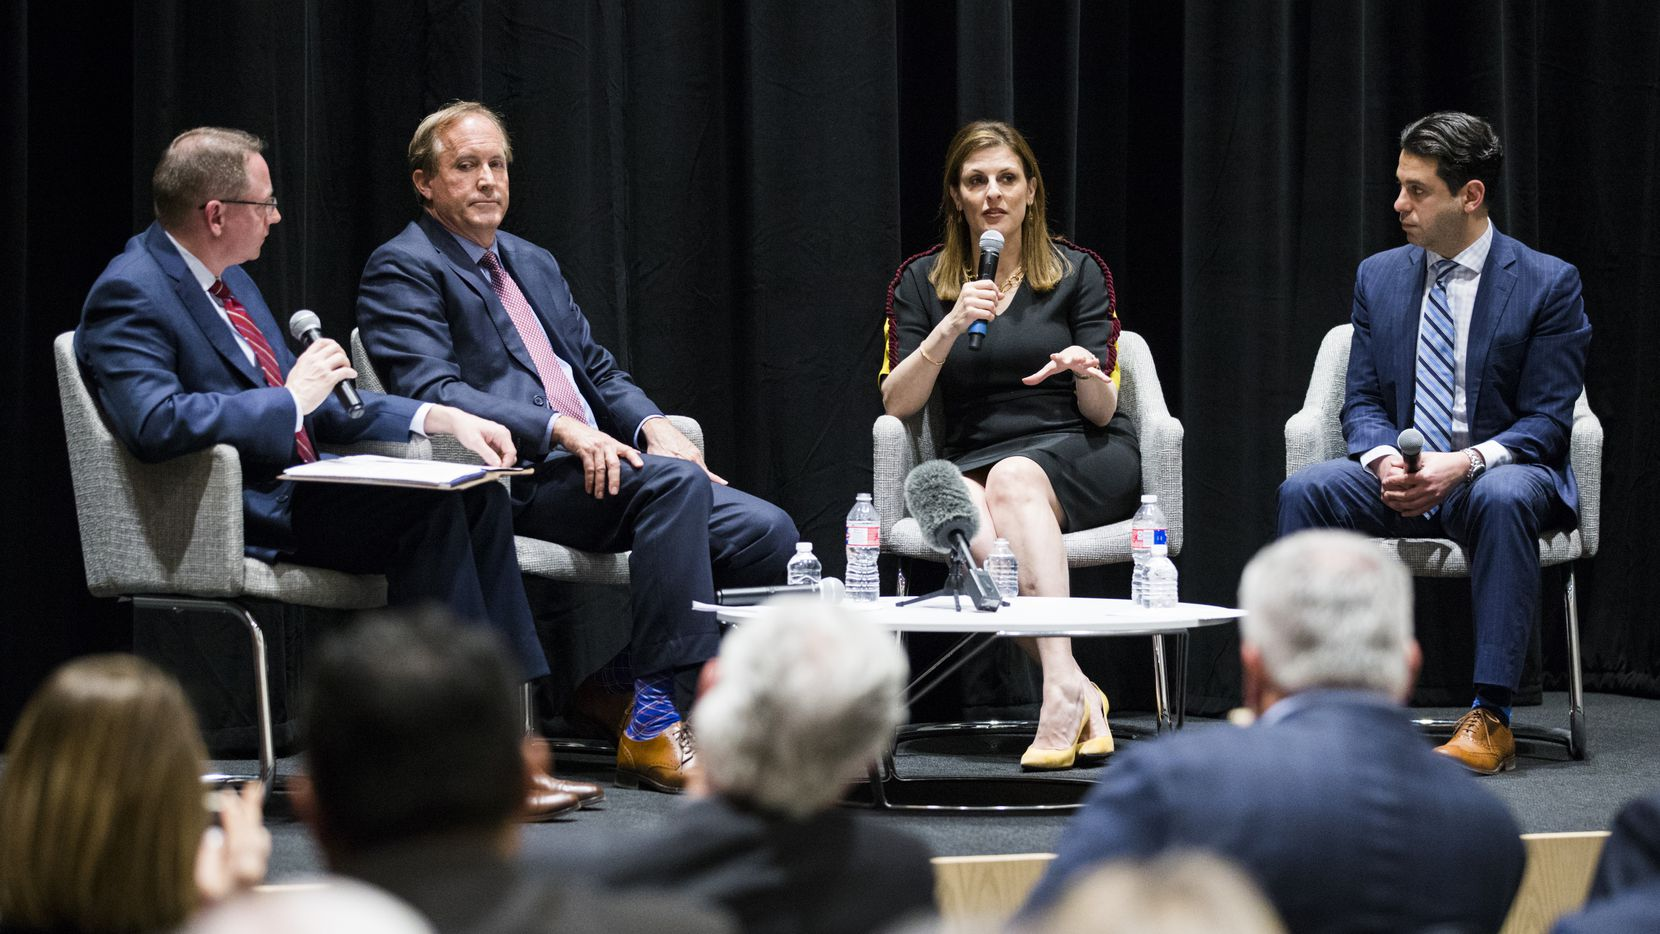 From left, The Dallas Morning News Vice President and Editor of Editorials Brandan Miniter, Attorney General Ken Paxton, U.S. Attorney Erin Nealy Cox, and  Human Trafficking Institute CEO Victor Boutros discuss changes in the way government is addressing sex trafficking on Feb. 26, 2020 at The Dallas Morning News Auditorium in Dallas. (Ashley Landis/The Dallas Morning News)